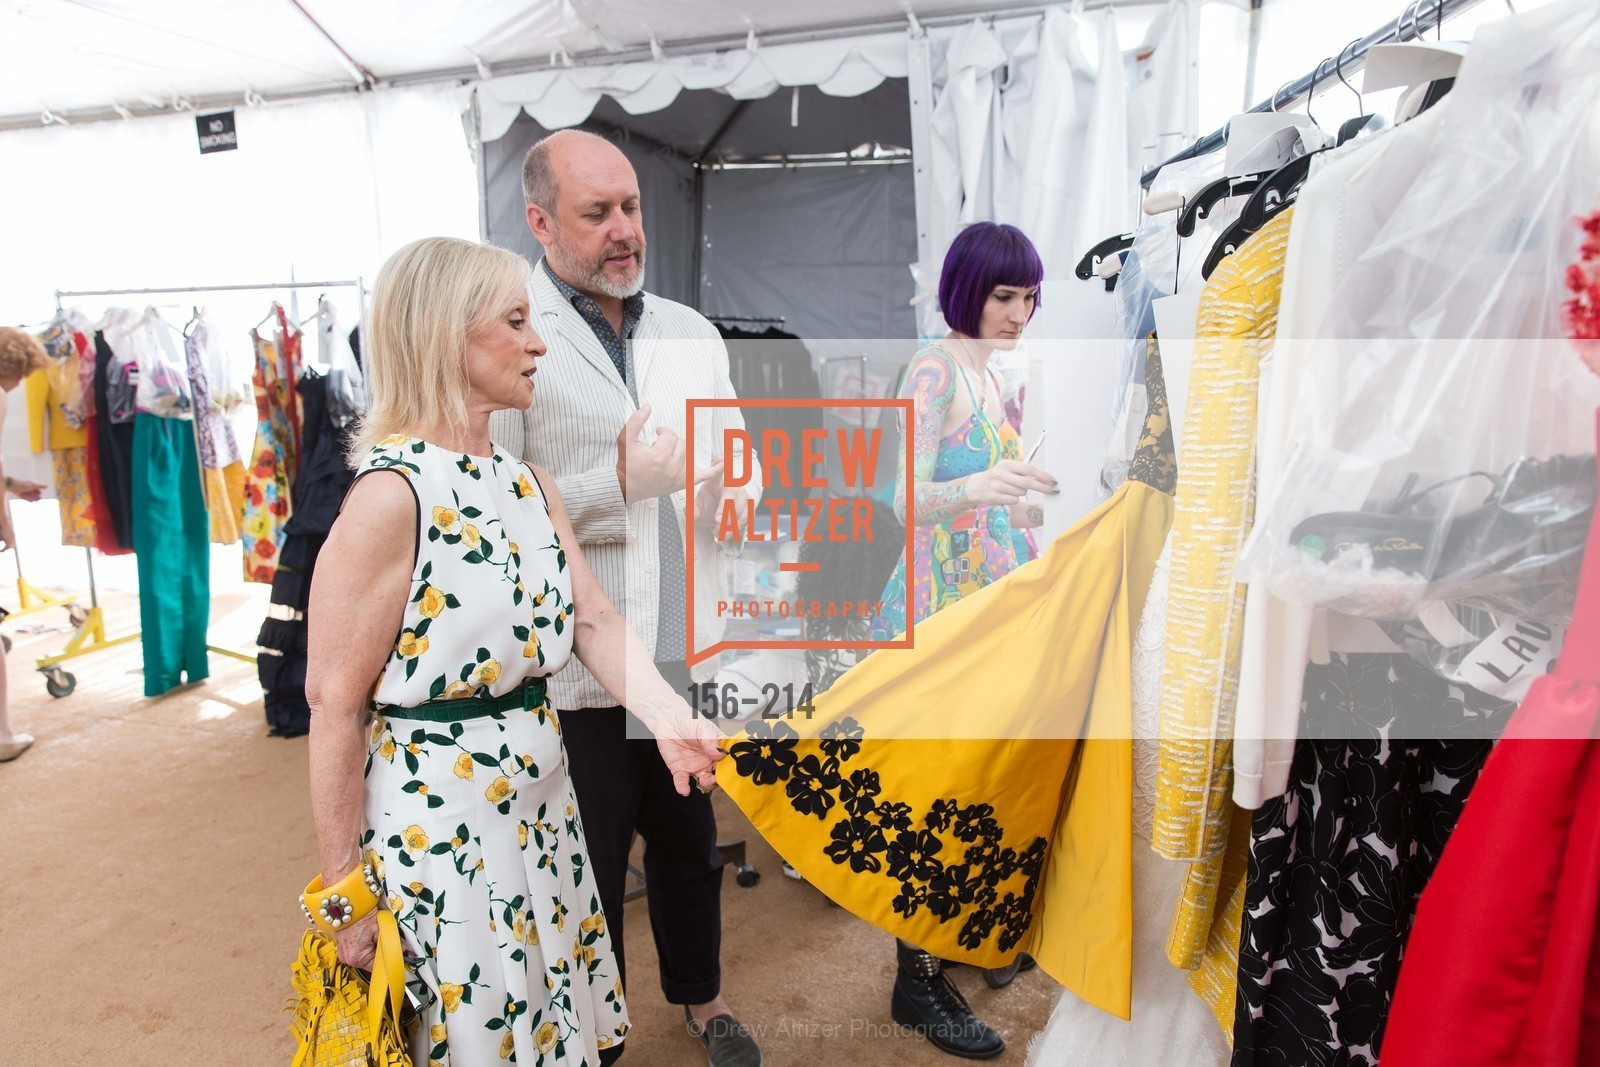 Barbara Brown, Peter Copping, Saks Fifth Avenue and The League to Save Lake Tahoe Present Fashion on the Lake, Private Residence, August 1st, 2015,Drew Altizer, Drew Altizer Photography, full-service agency, private events, San Francisco photographer, photographer california